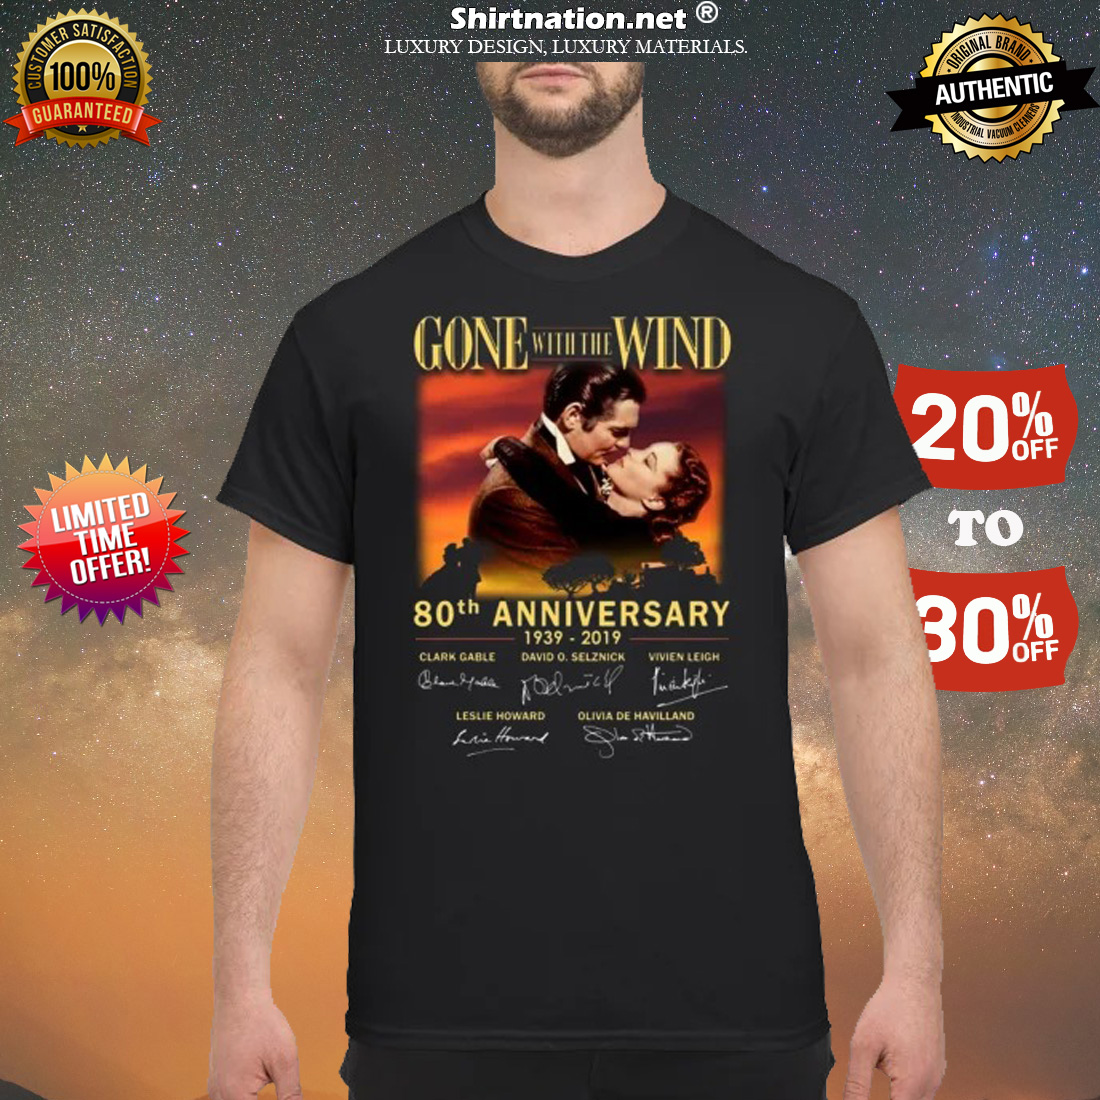 Gone of the wind 80th anniversary 1939 2019 shirt